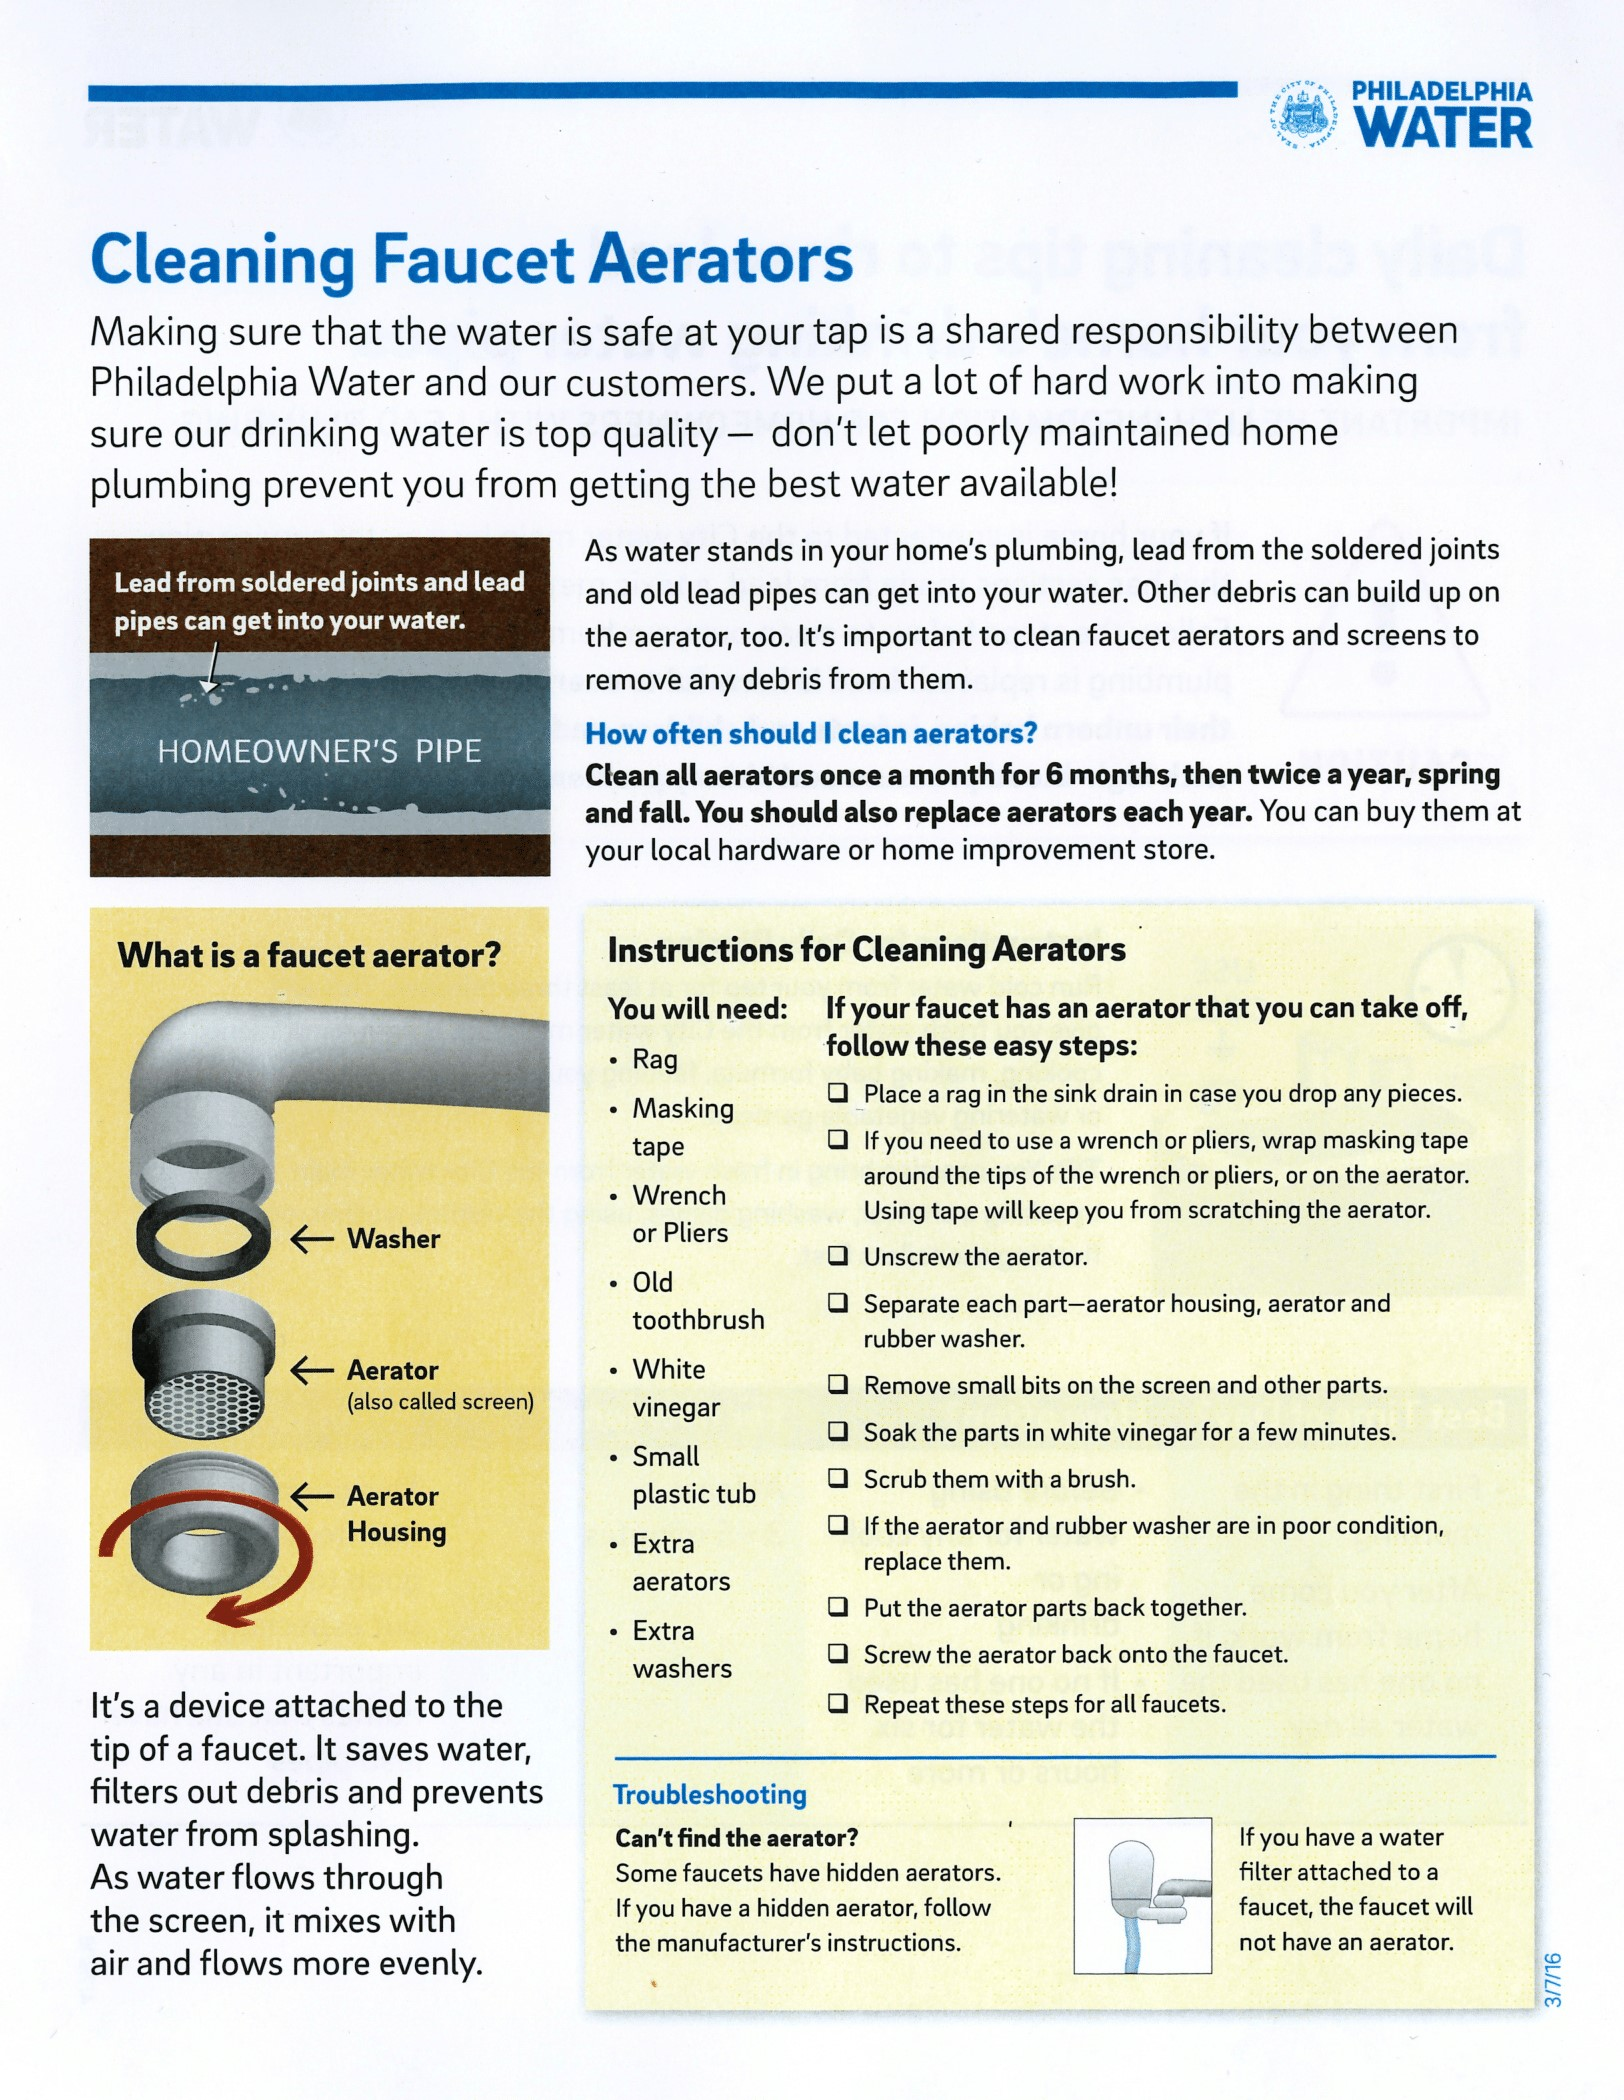 Tips Cleaning Faucet Aerators South Kensington Community Partners